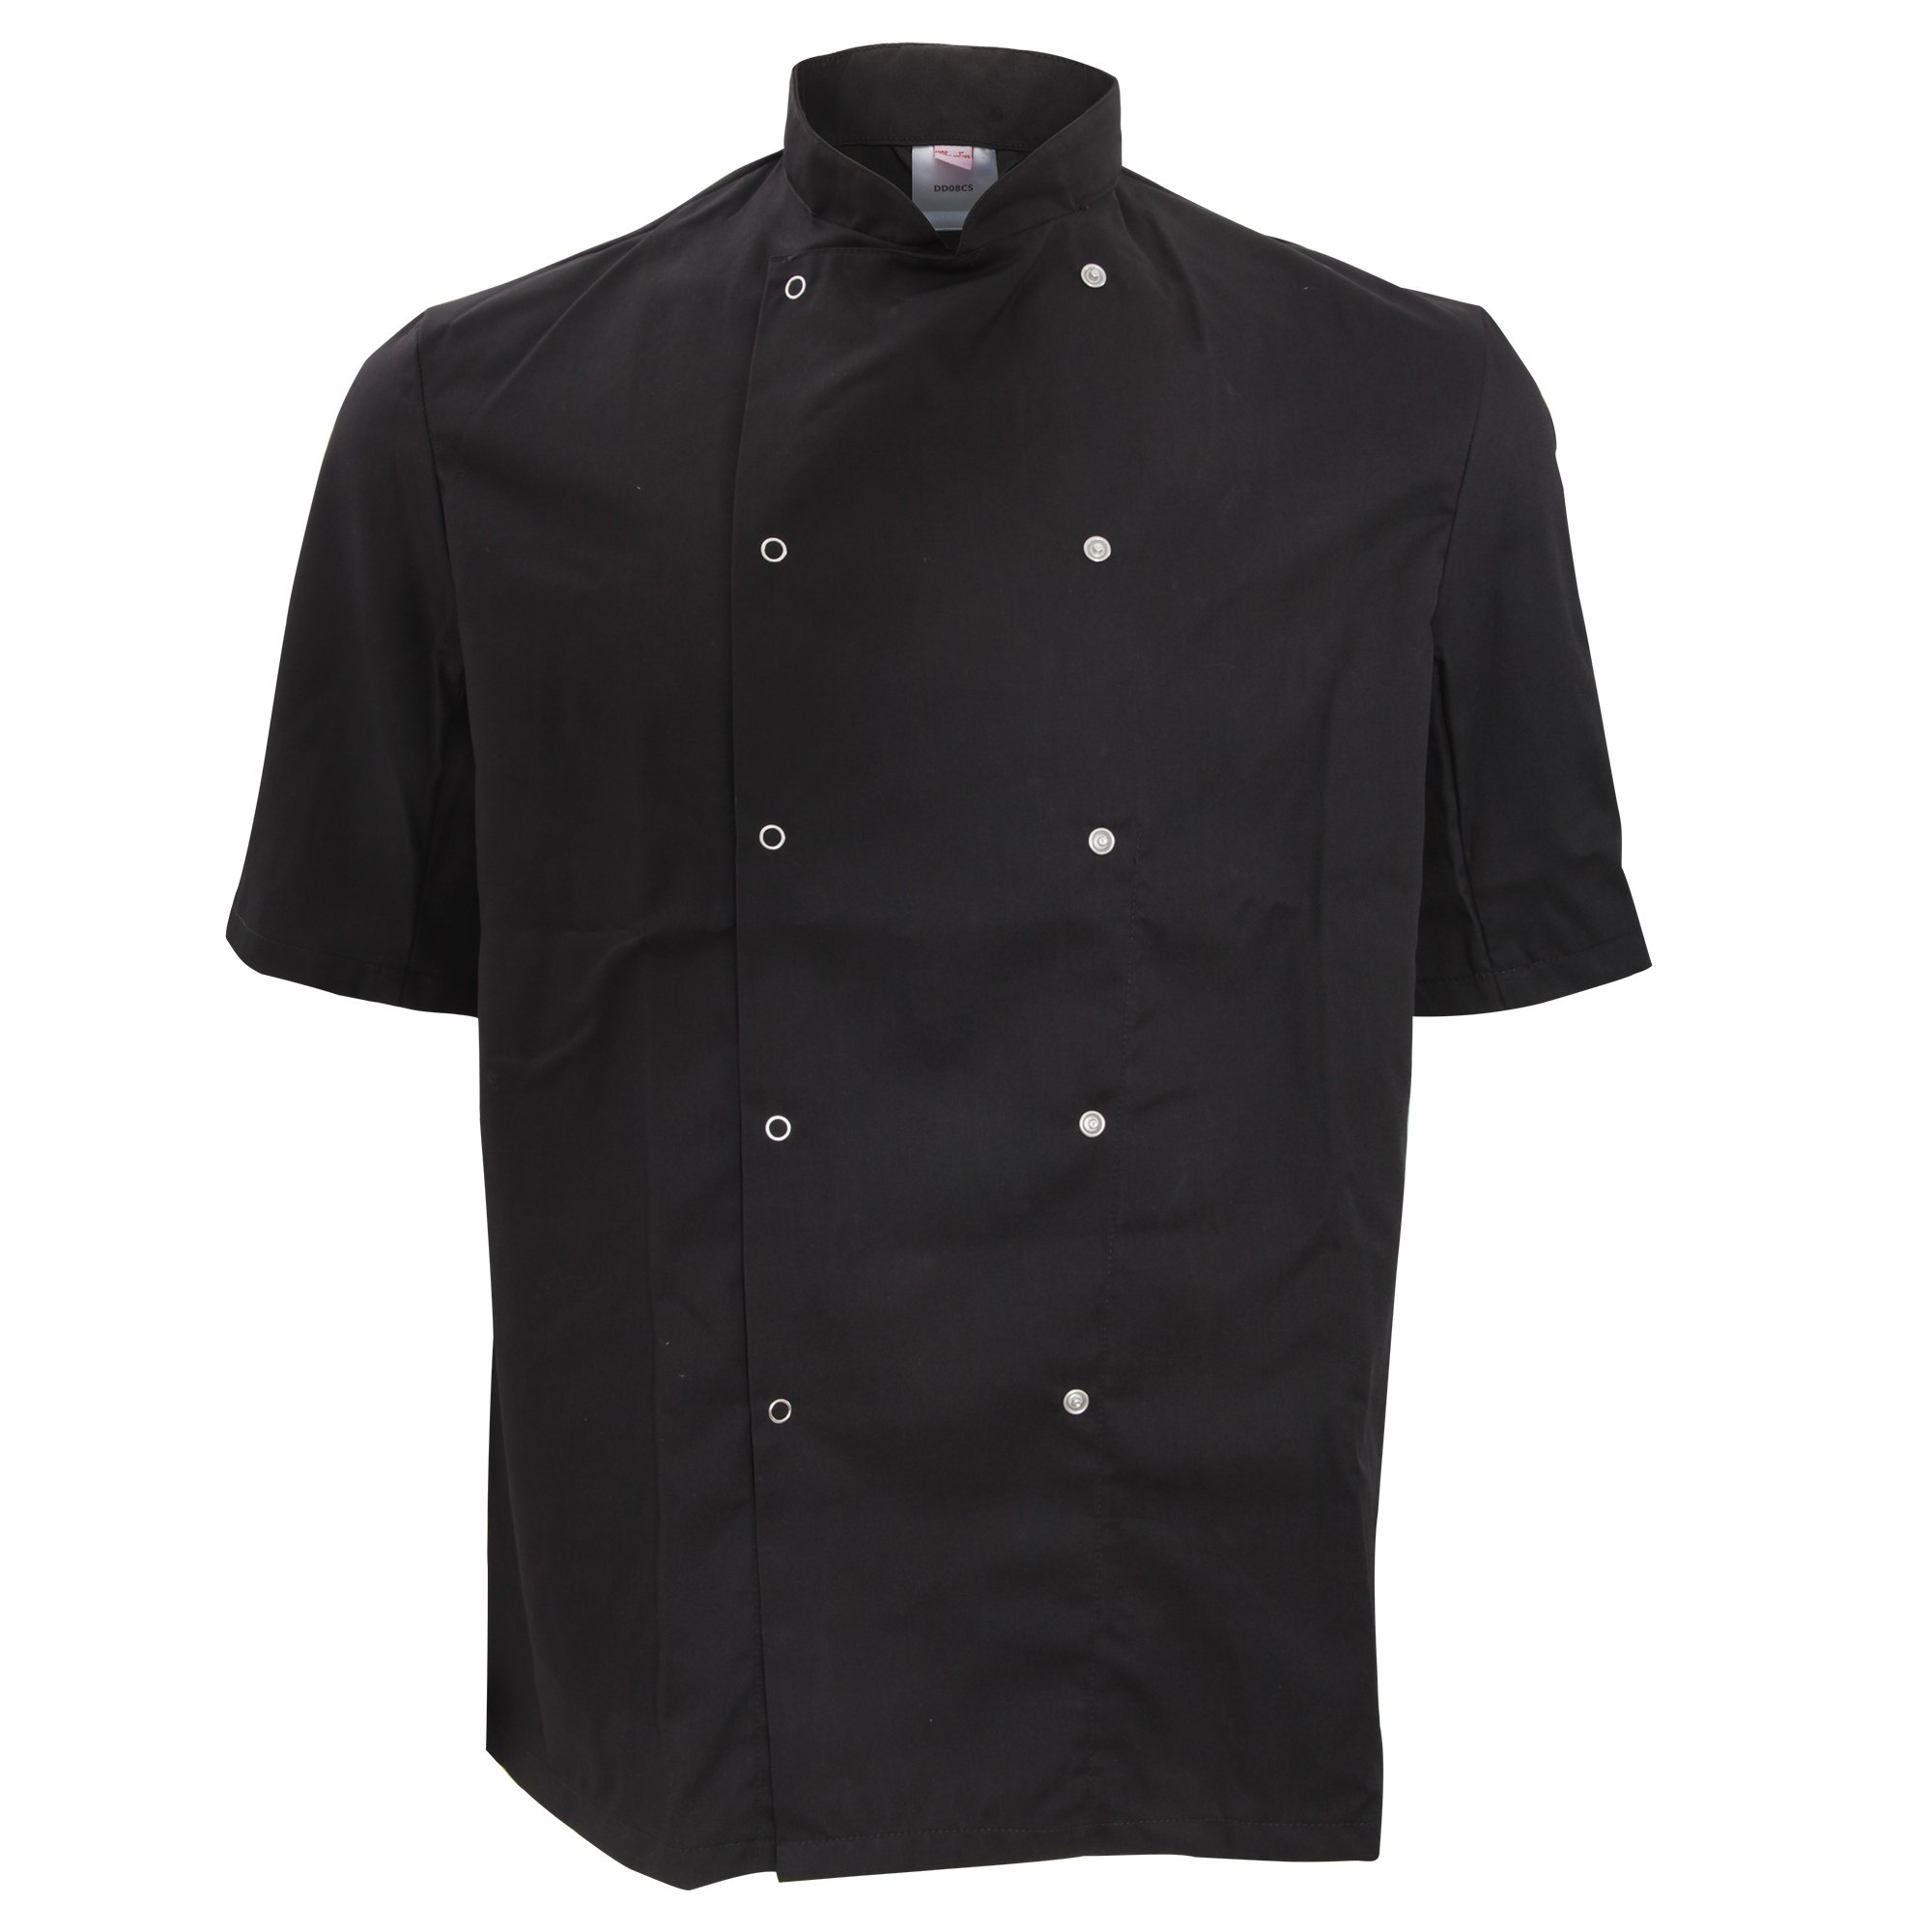 Dennys Unisex Short Sleeve Press Stud Chef Jacket (S) (Black) by Denny's